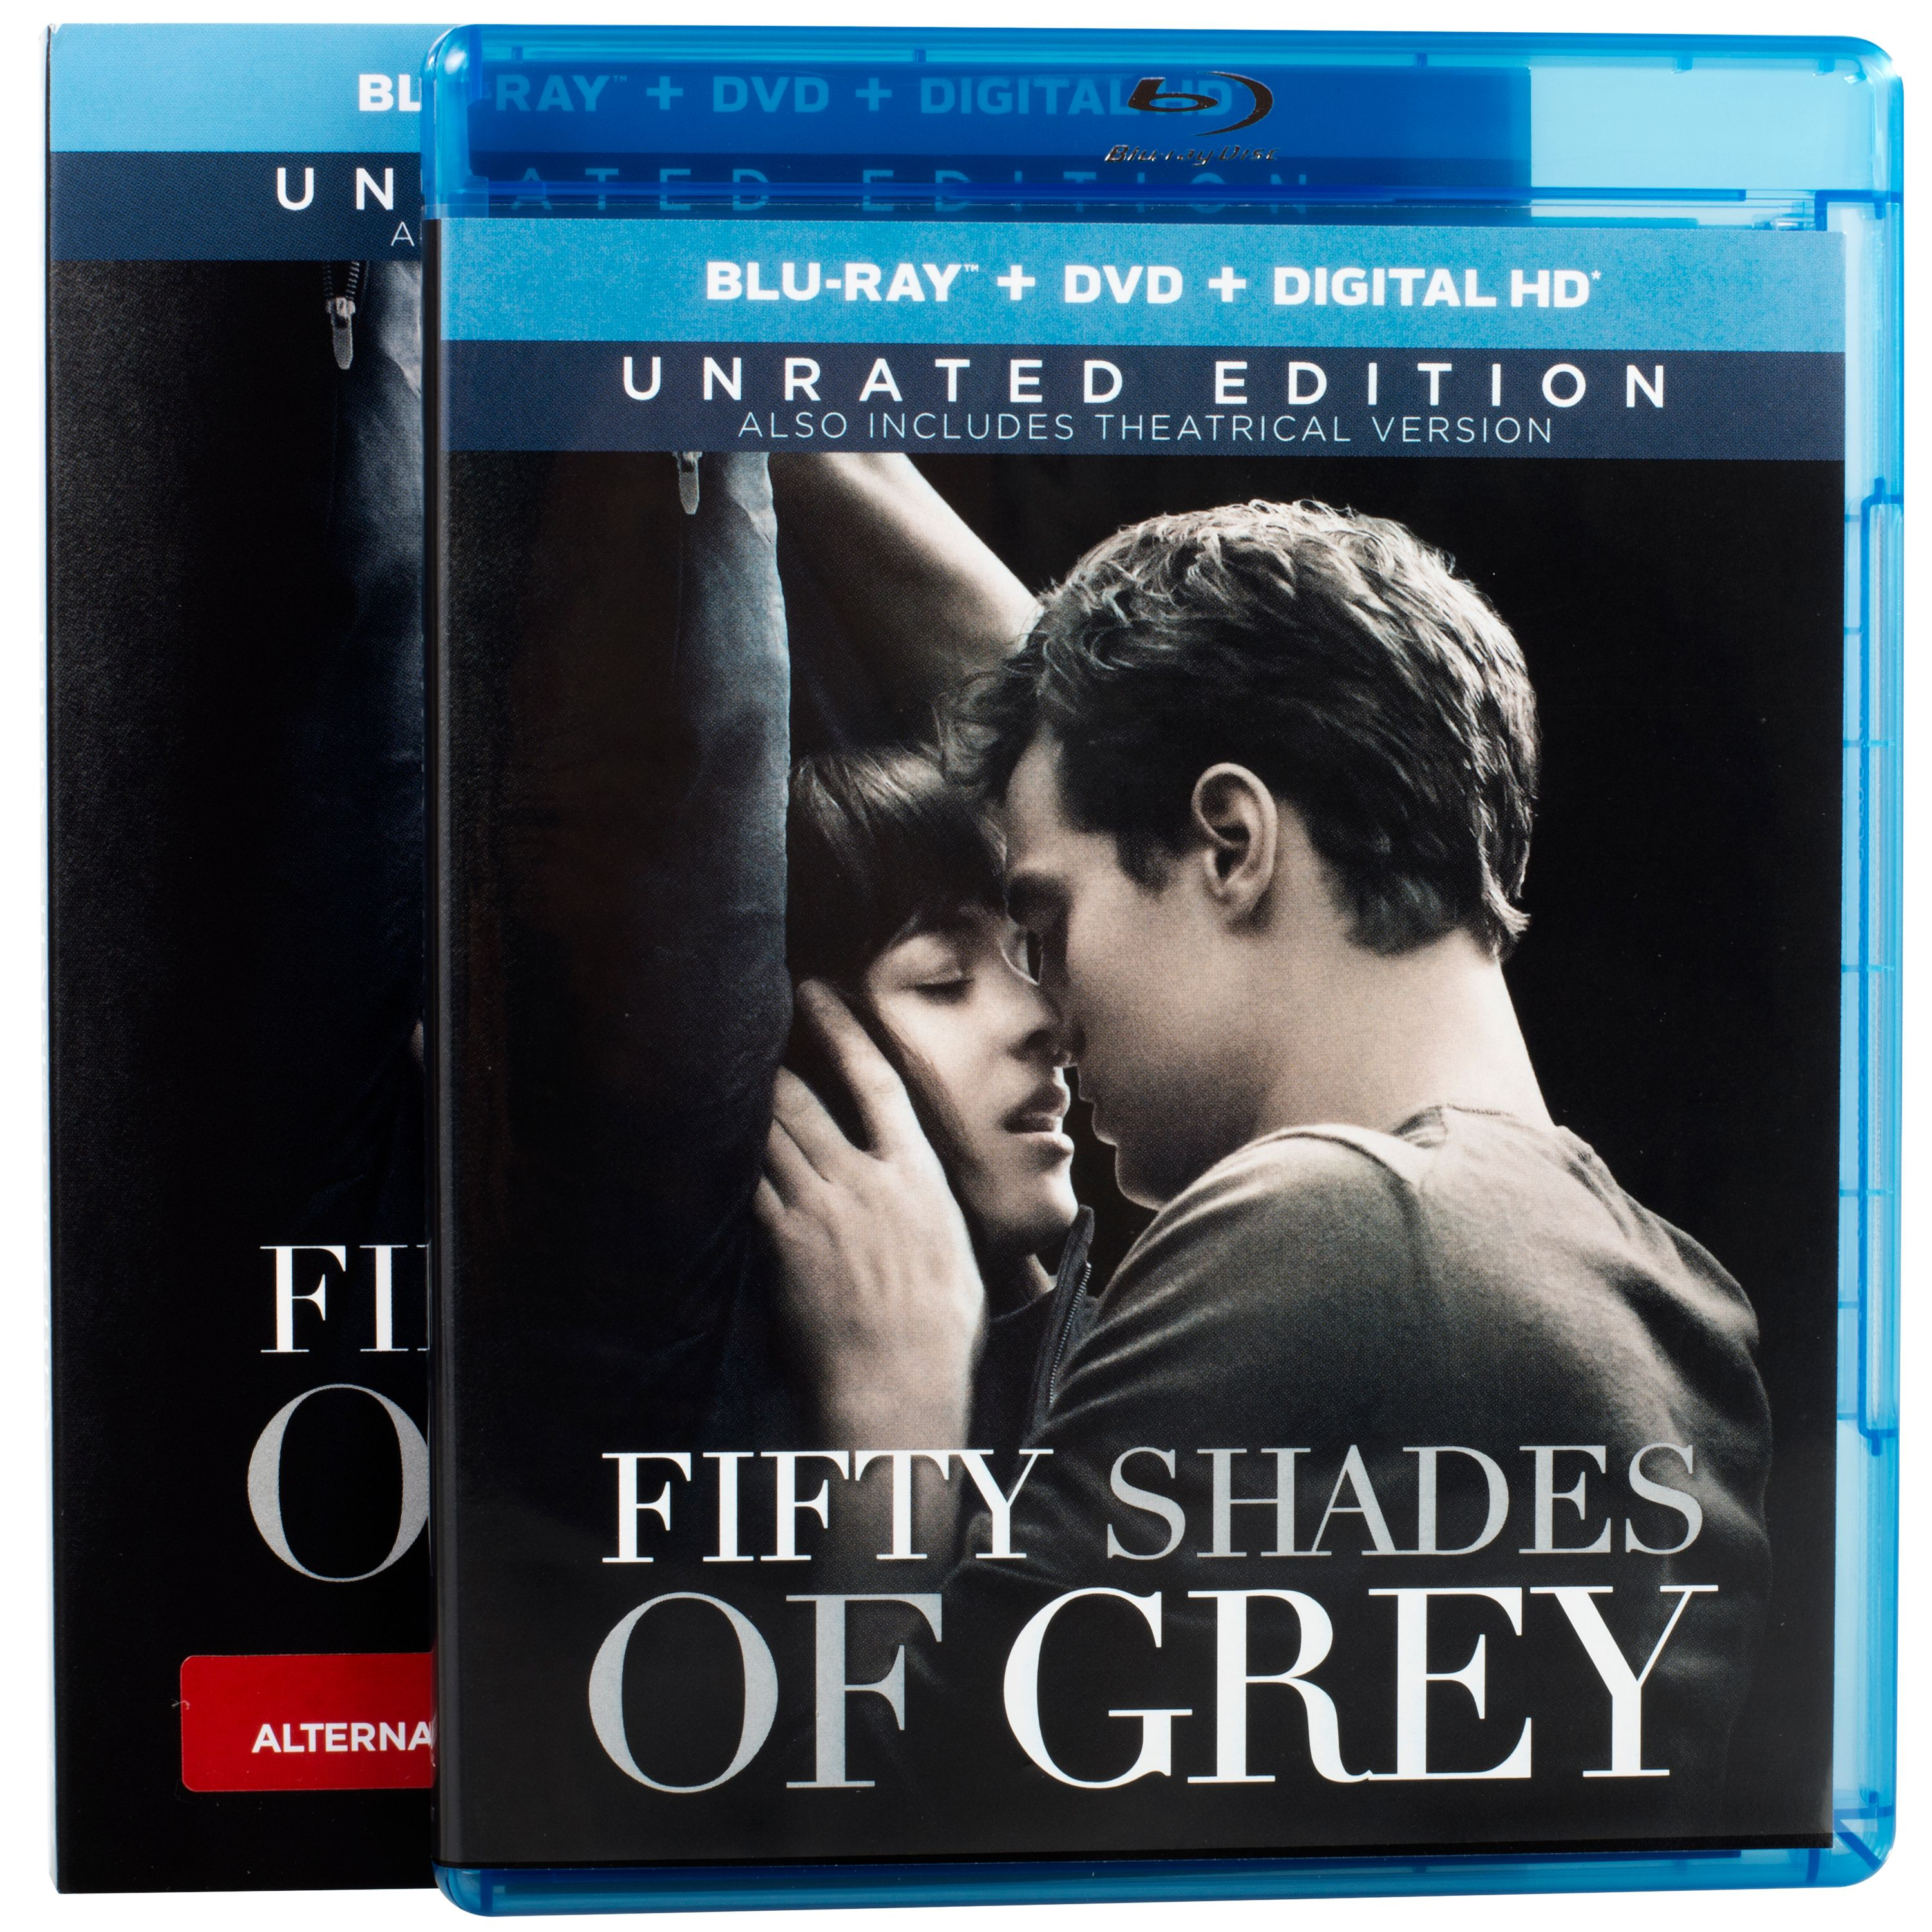 Fifty Shades of Grey, Blu-ray   DVD Combo, romance movie